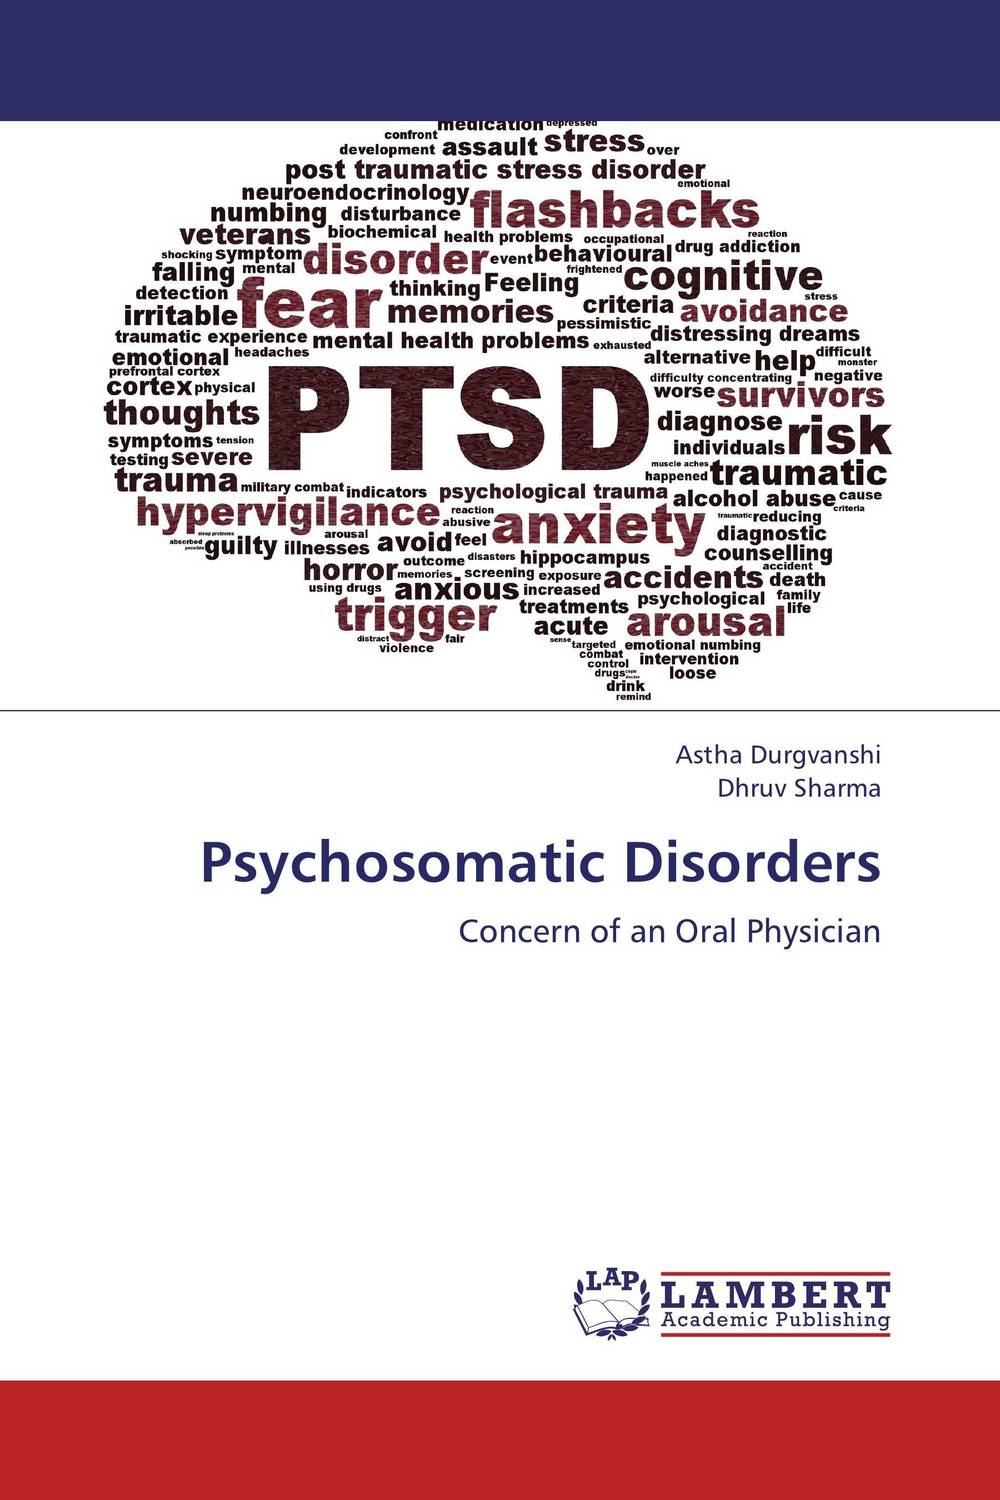 Psychosomatic Disorders the role of evaluation as a mechanism for advancing principal practice